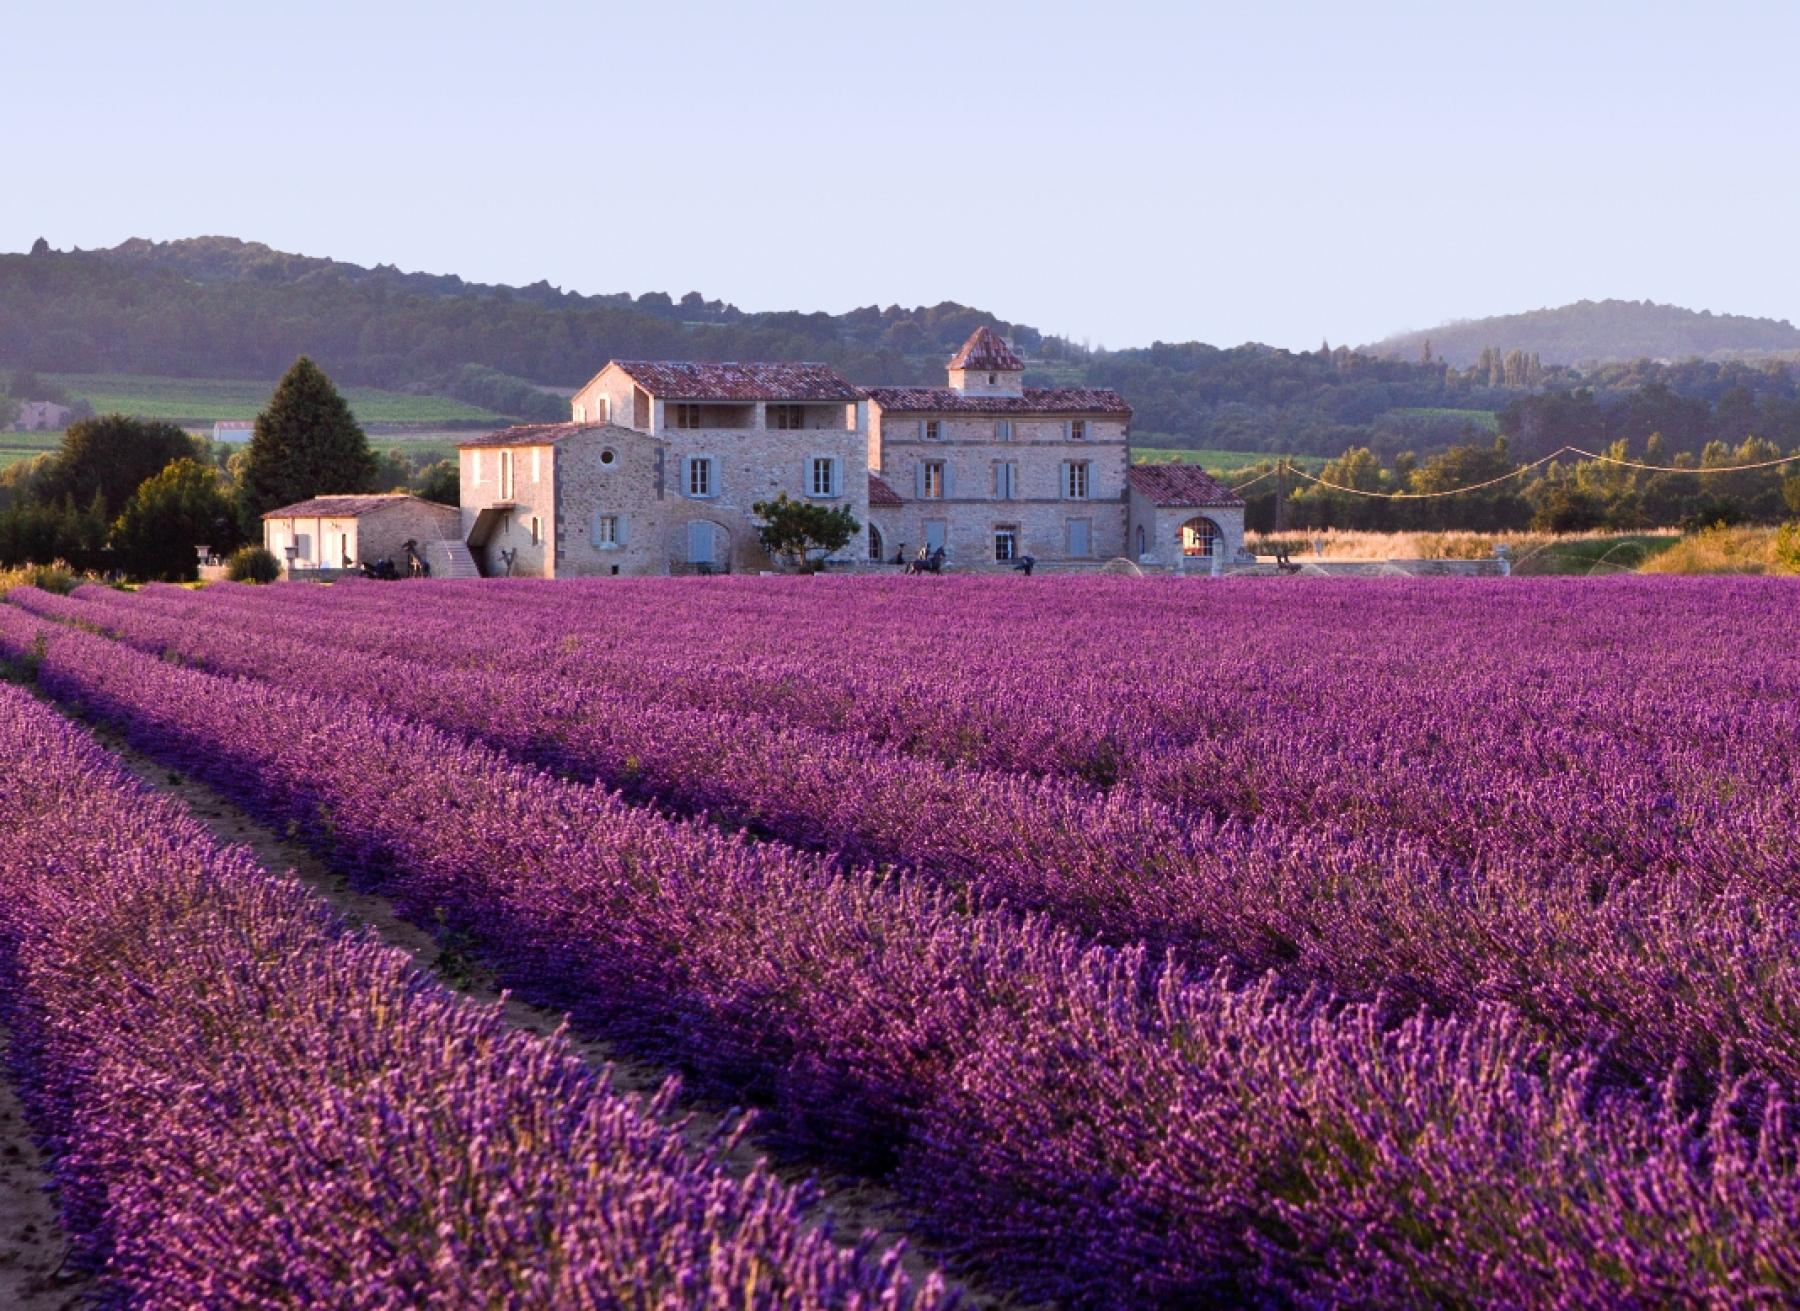 Live like a local in Provence and French Riviera : Art, Food, Charm, and Sea starting at Provence, France